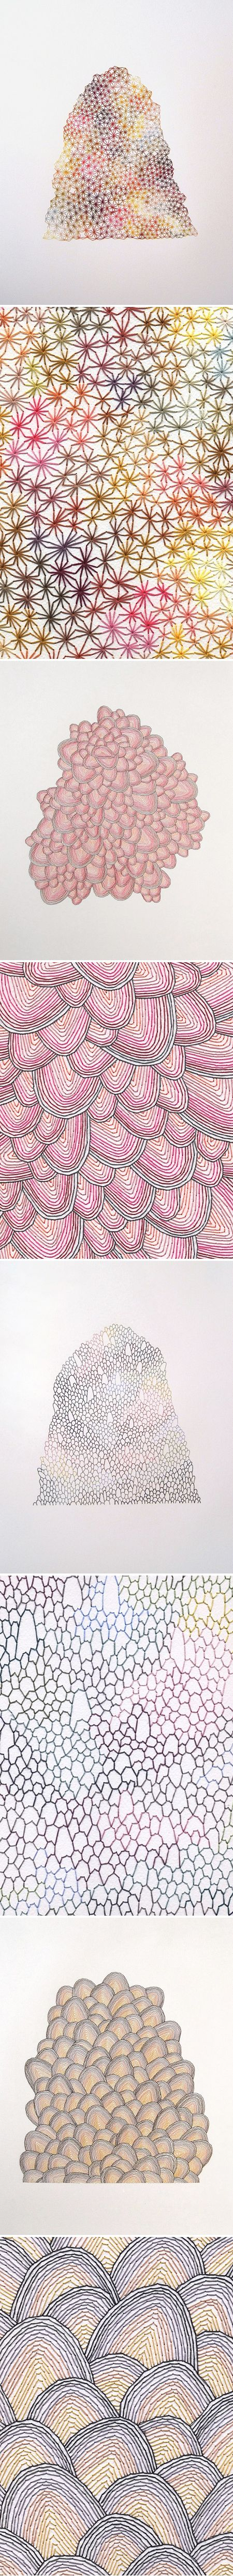 Emily Barletta's embroidered pattern art is fantastically inspiring.